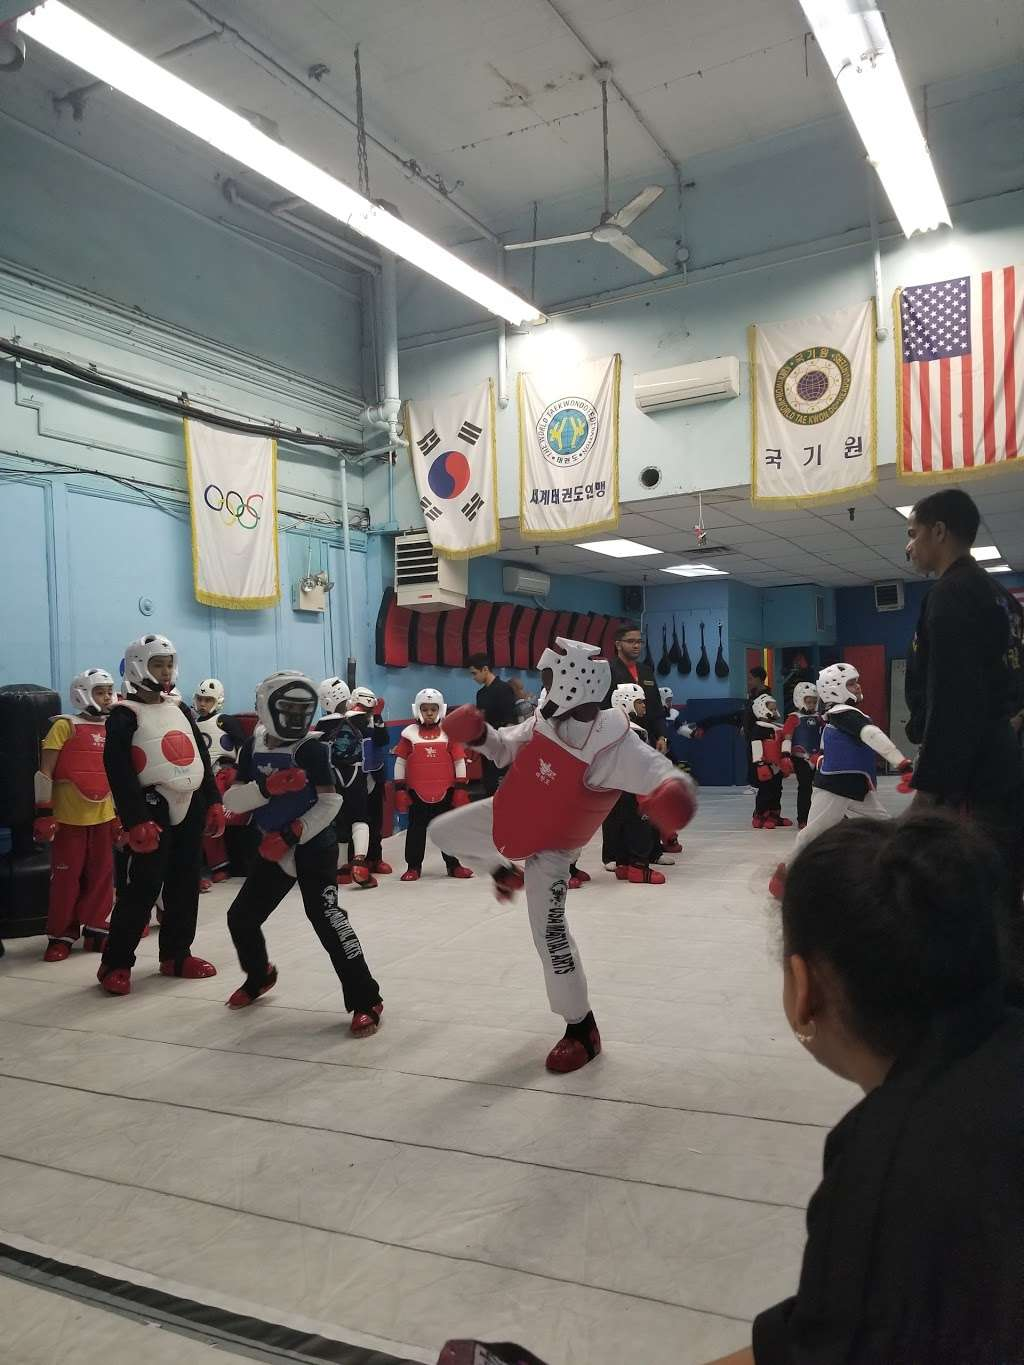 USA Martial Arts Fighting - health  | Photo 1 of 2 | Address: 1877 Webster Ave, Bronx, NY 10457, USA | Phone: (718) 618-7100